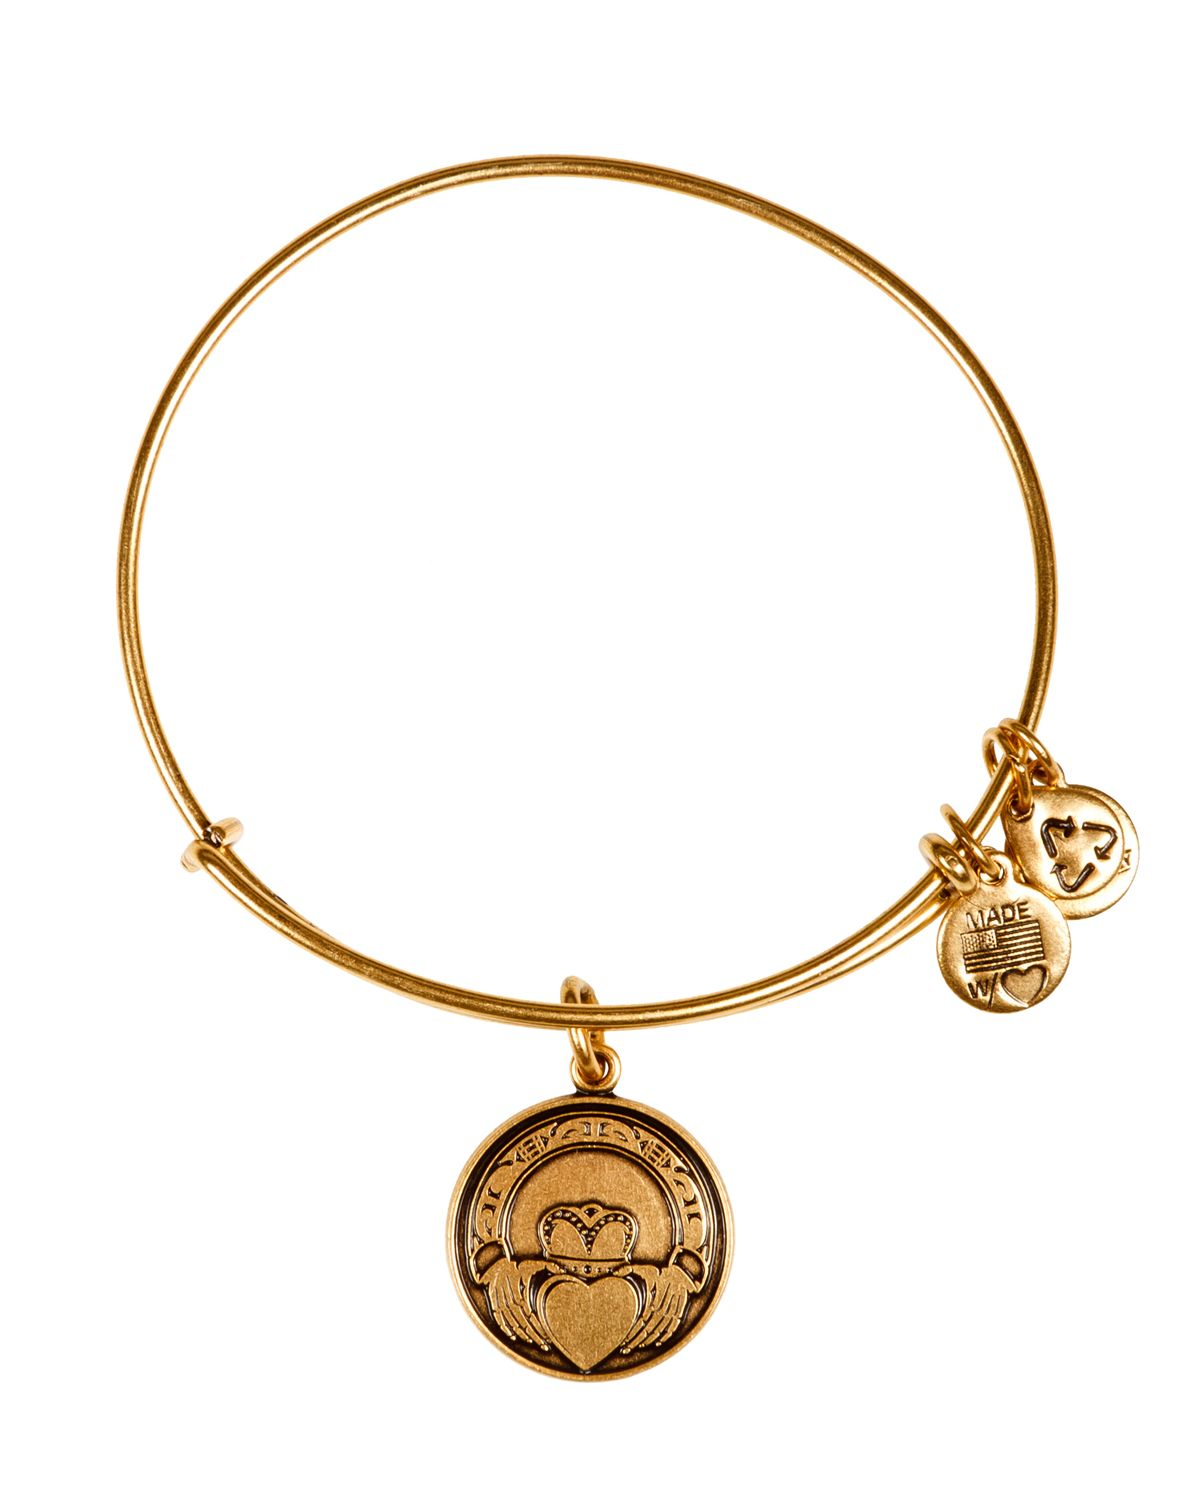 Alex And Ani Jewellery. Alex And Ani Jewellery offers a wide range of bangles, necklaces, rings and earrings with good intentions. The American brand based in Rhode Island is eco-conscious and spreads positive energy throughout their designs.